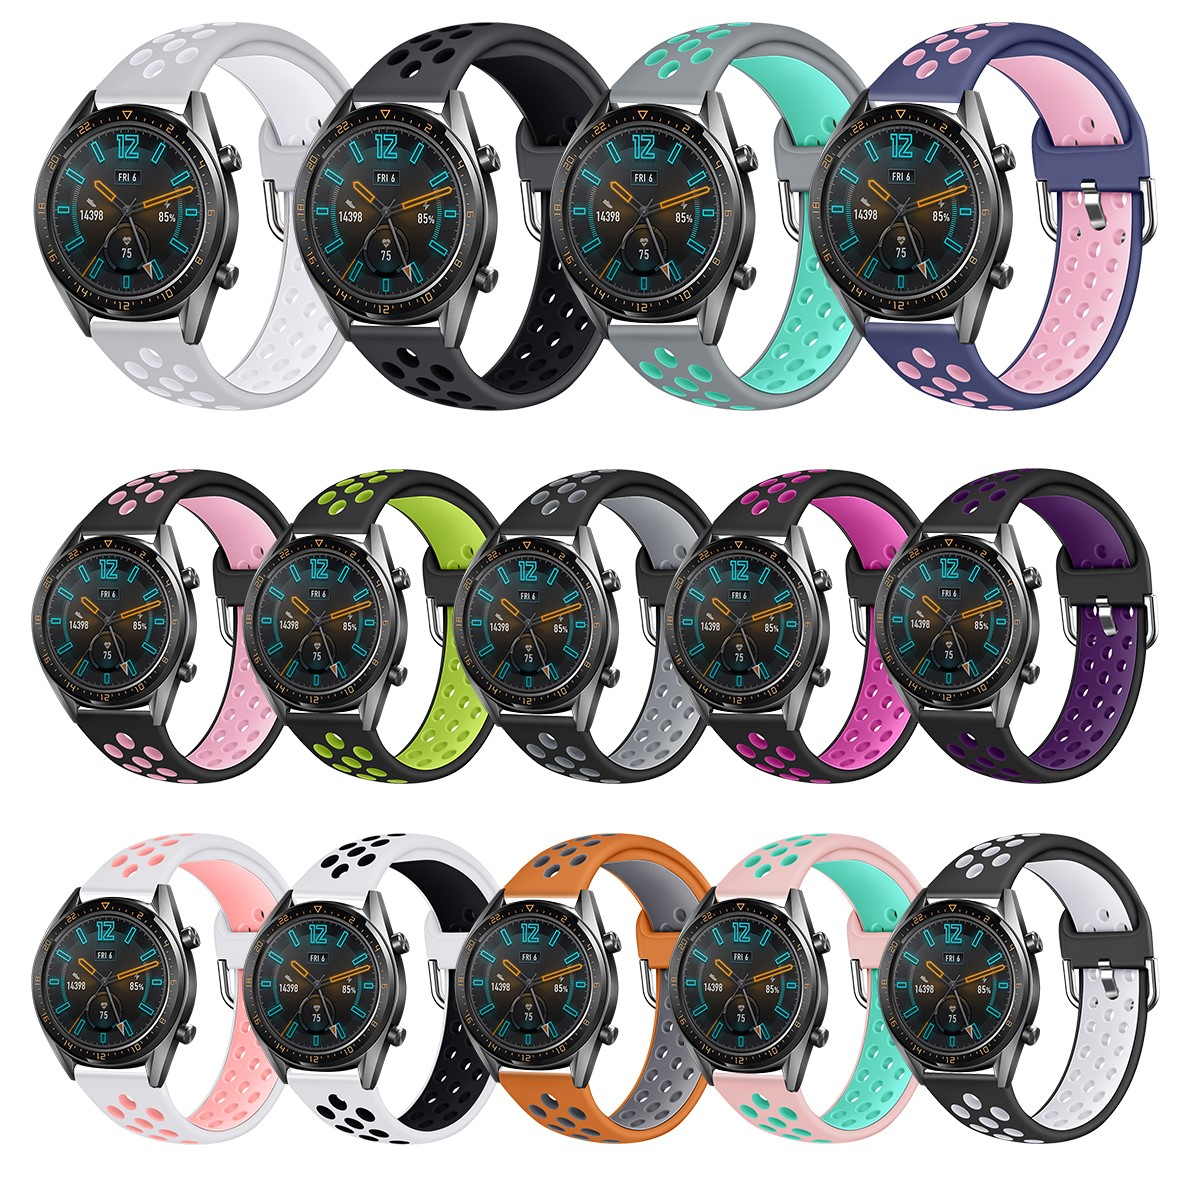 Sports Band For HUAWEI WATCH GT GT2 22MM Strap Band Bracelet Sport Replacement Watch Band For Gear S3  71002